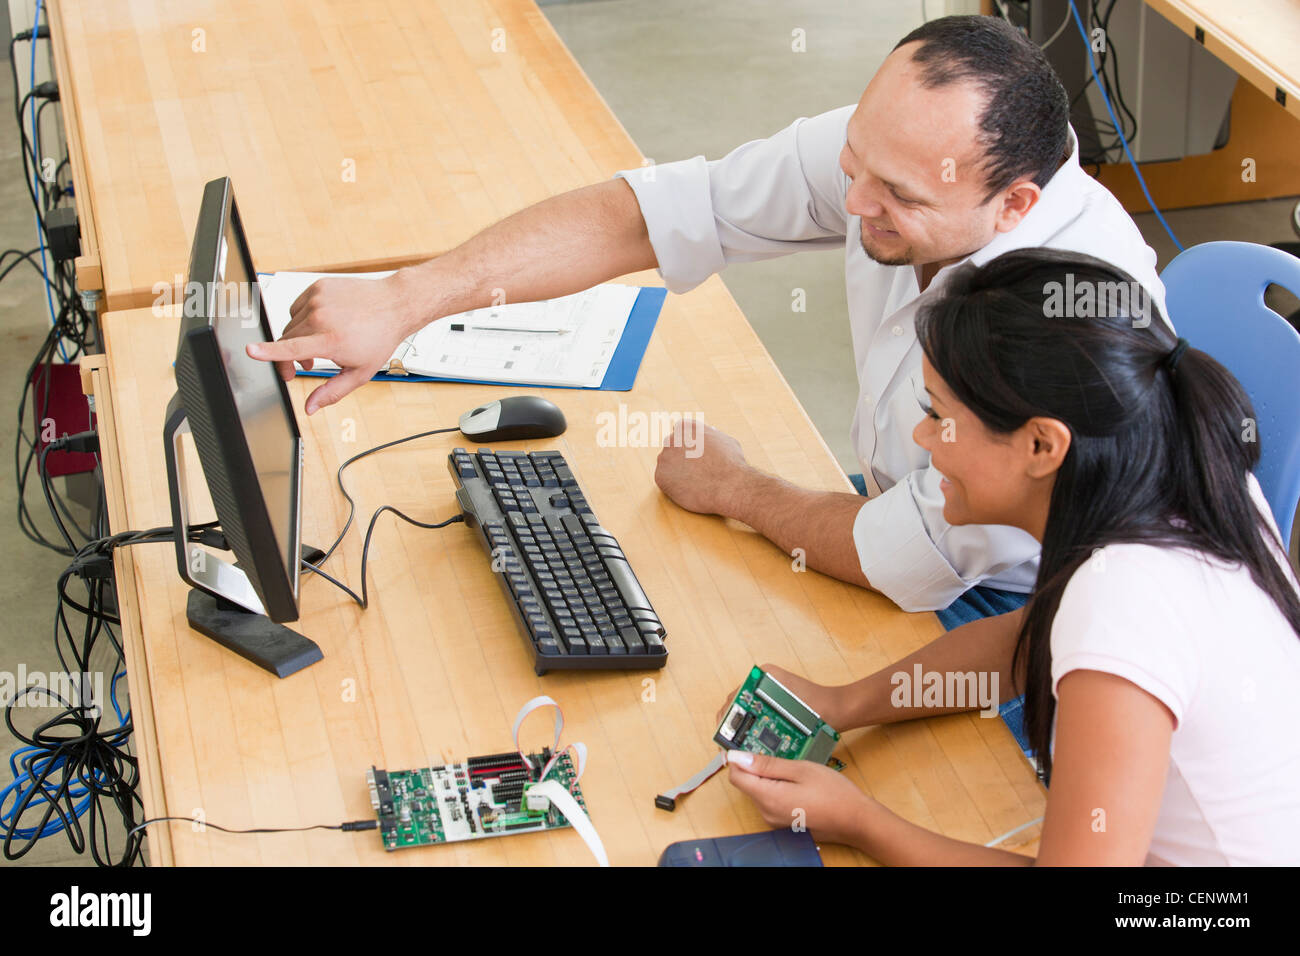 Engineering students at computer using in-circuit emulator - Stock Image